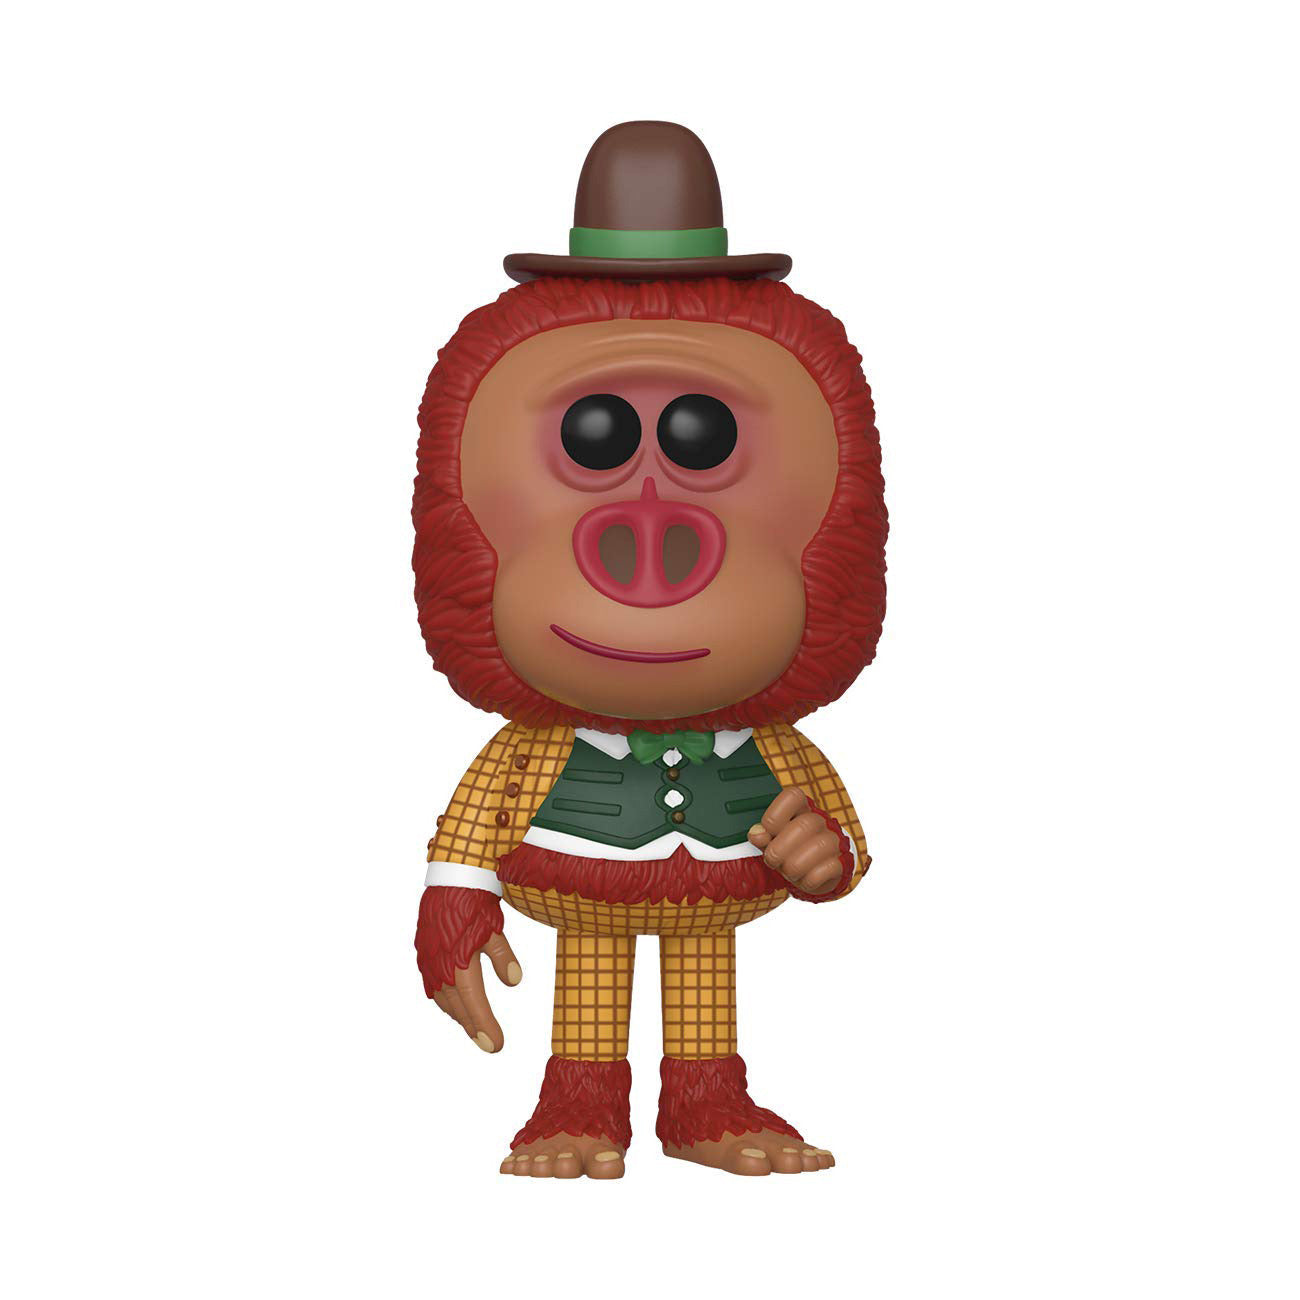 Missing Link Mr. Link in Suit Pop! Animation Vinyl Figure